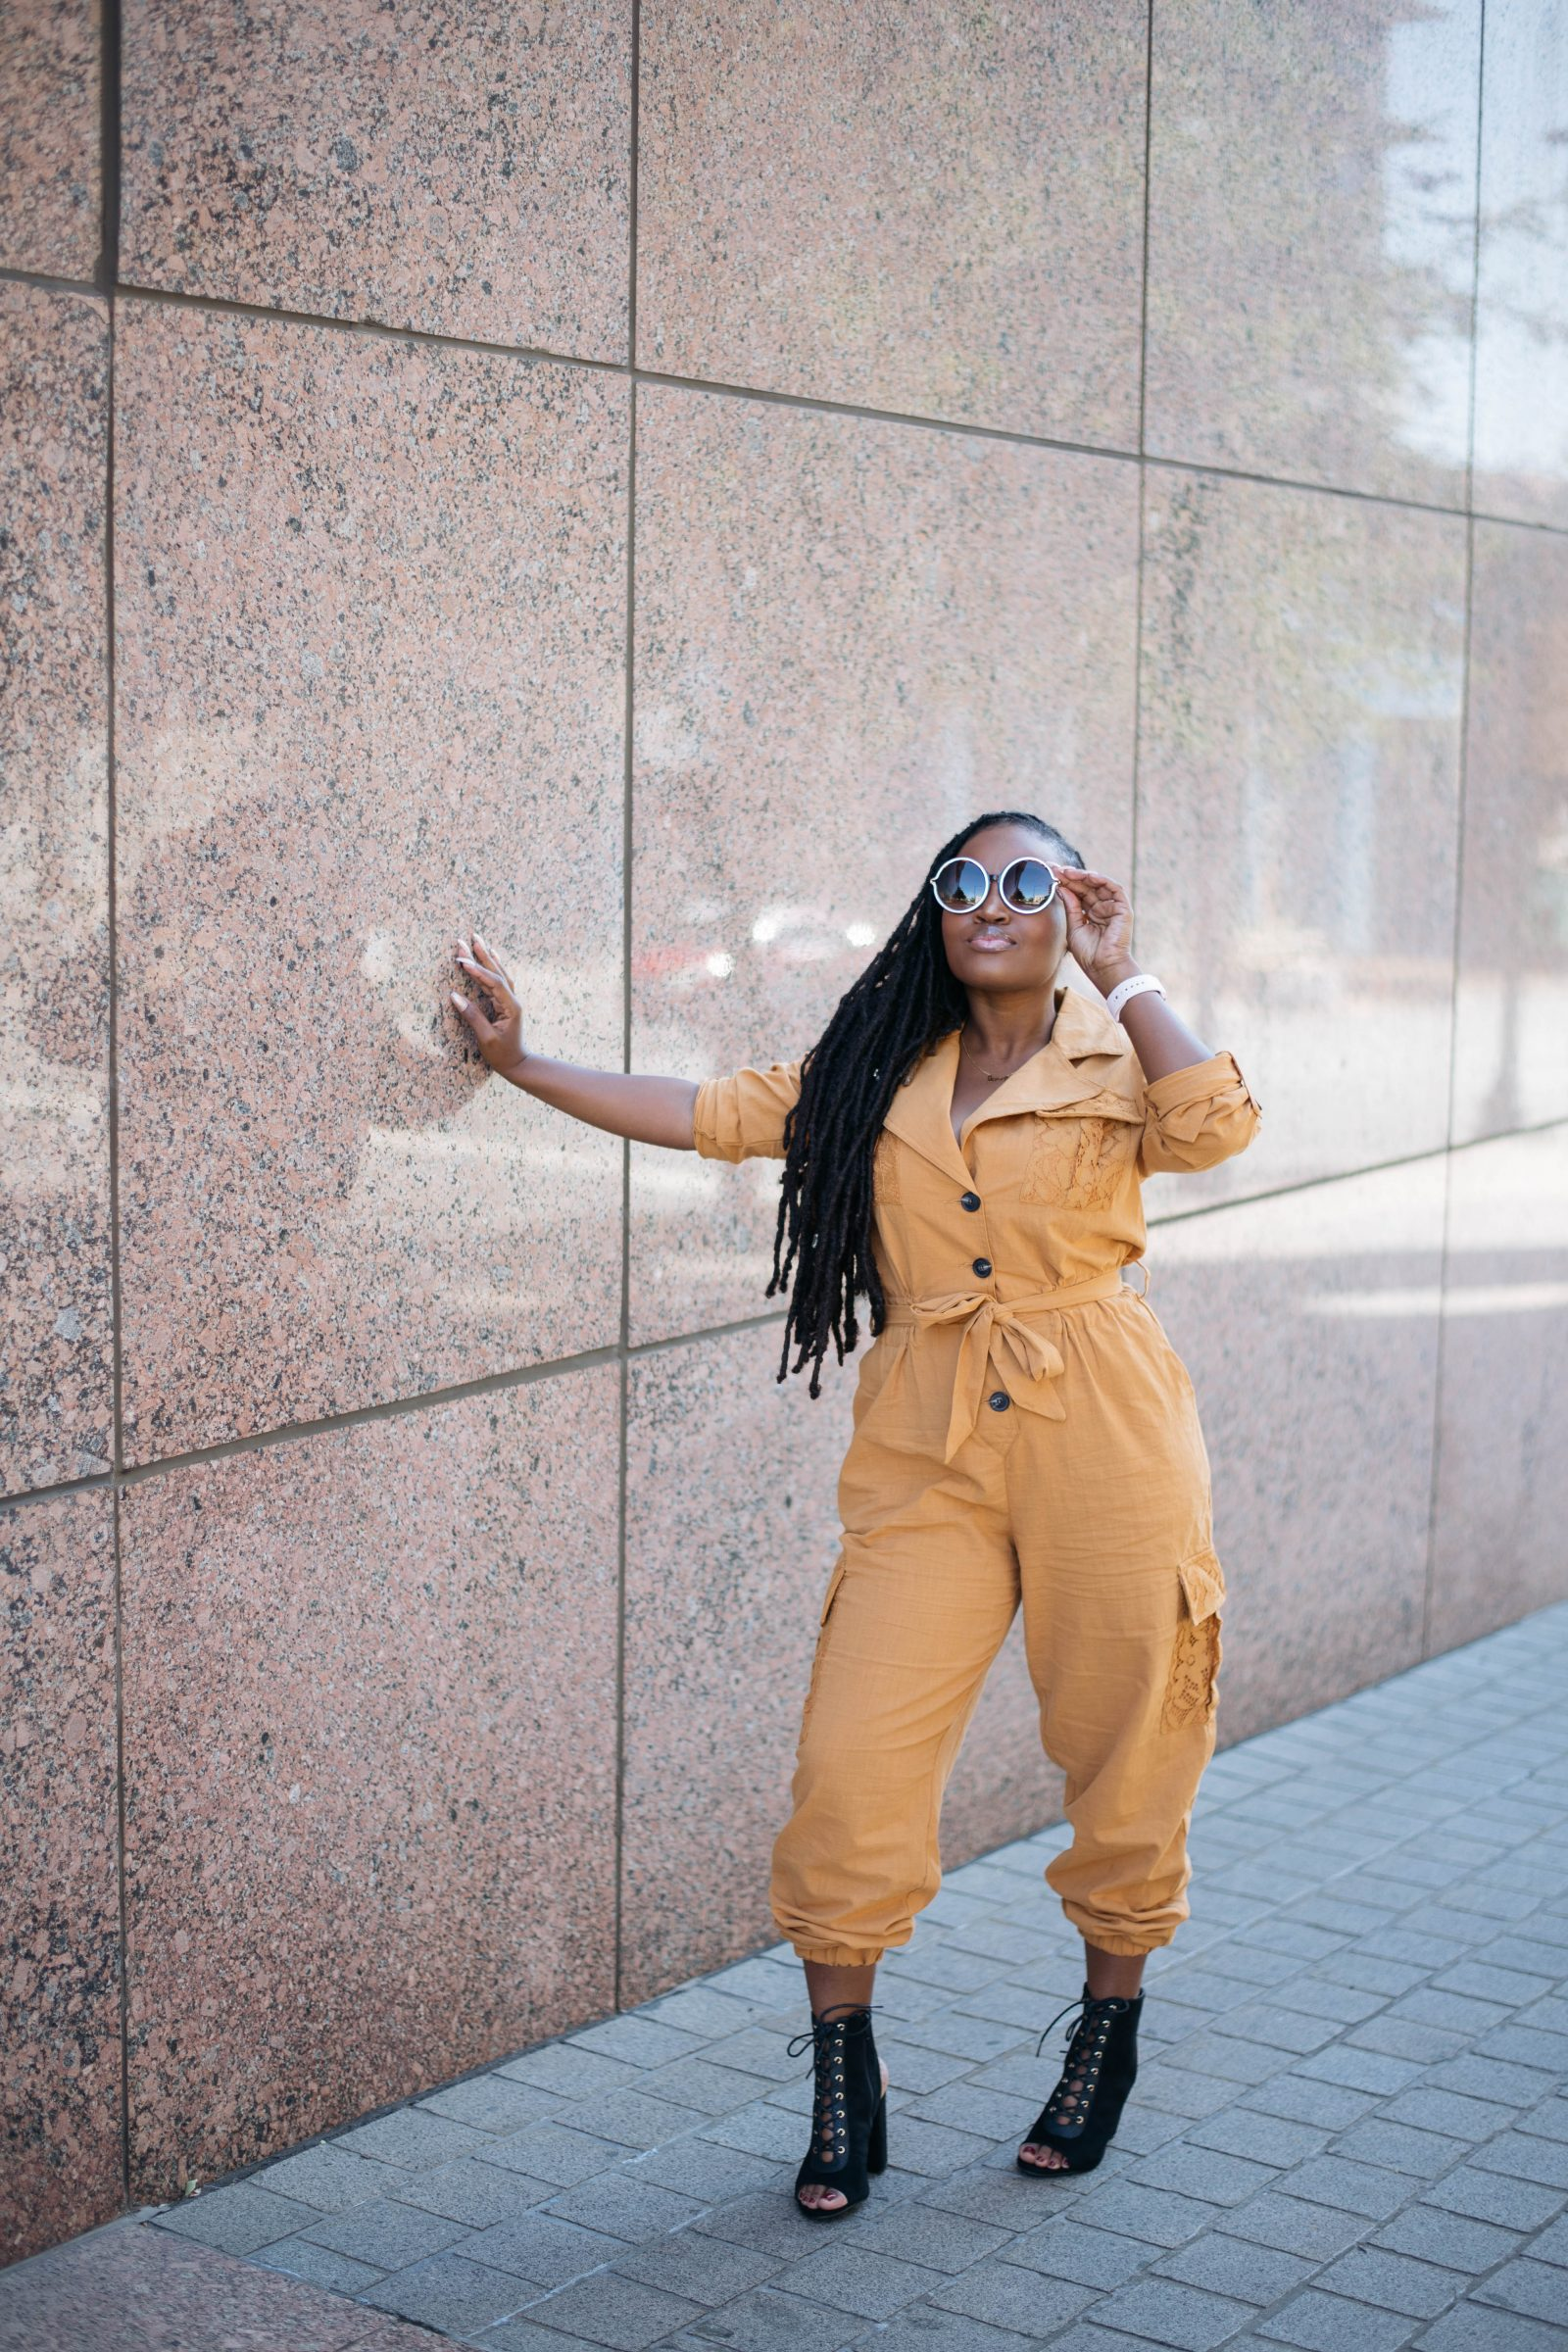 SMASHING GOALS IN THIS FLY UTILITY JUMPSUIT